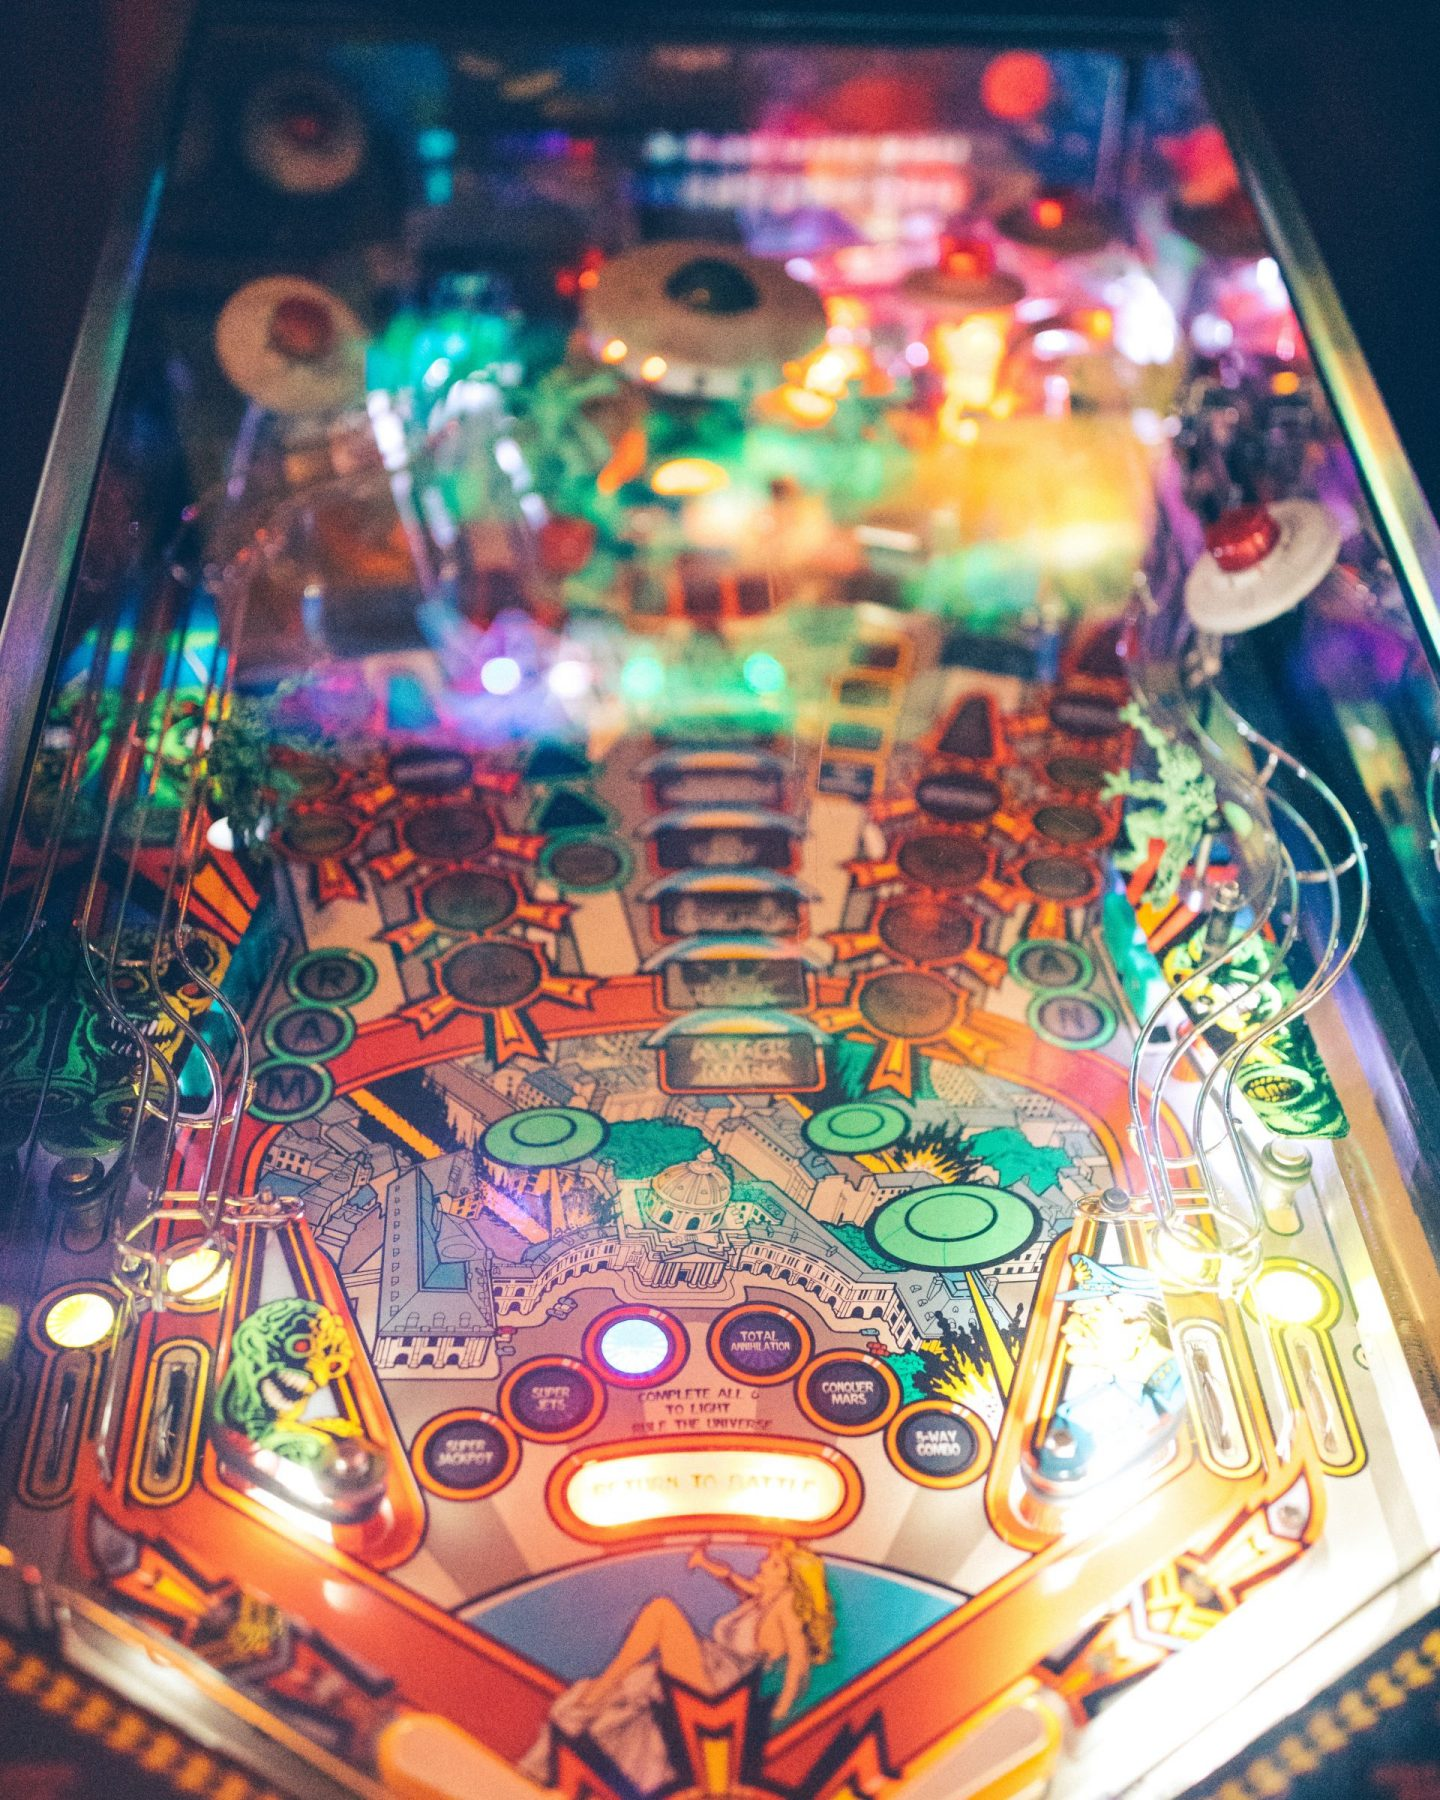 things to do in Leeds city centre - retro arcade came close up of pinball